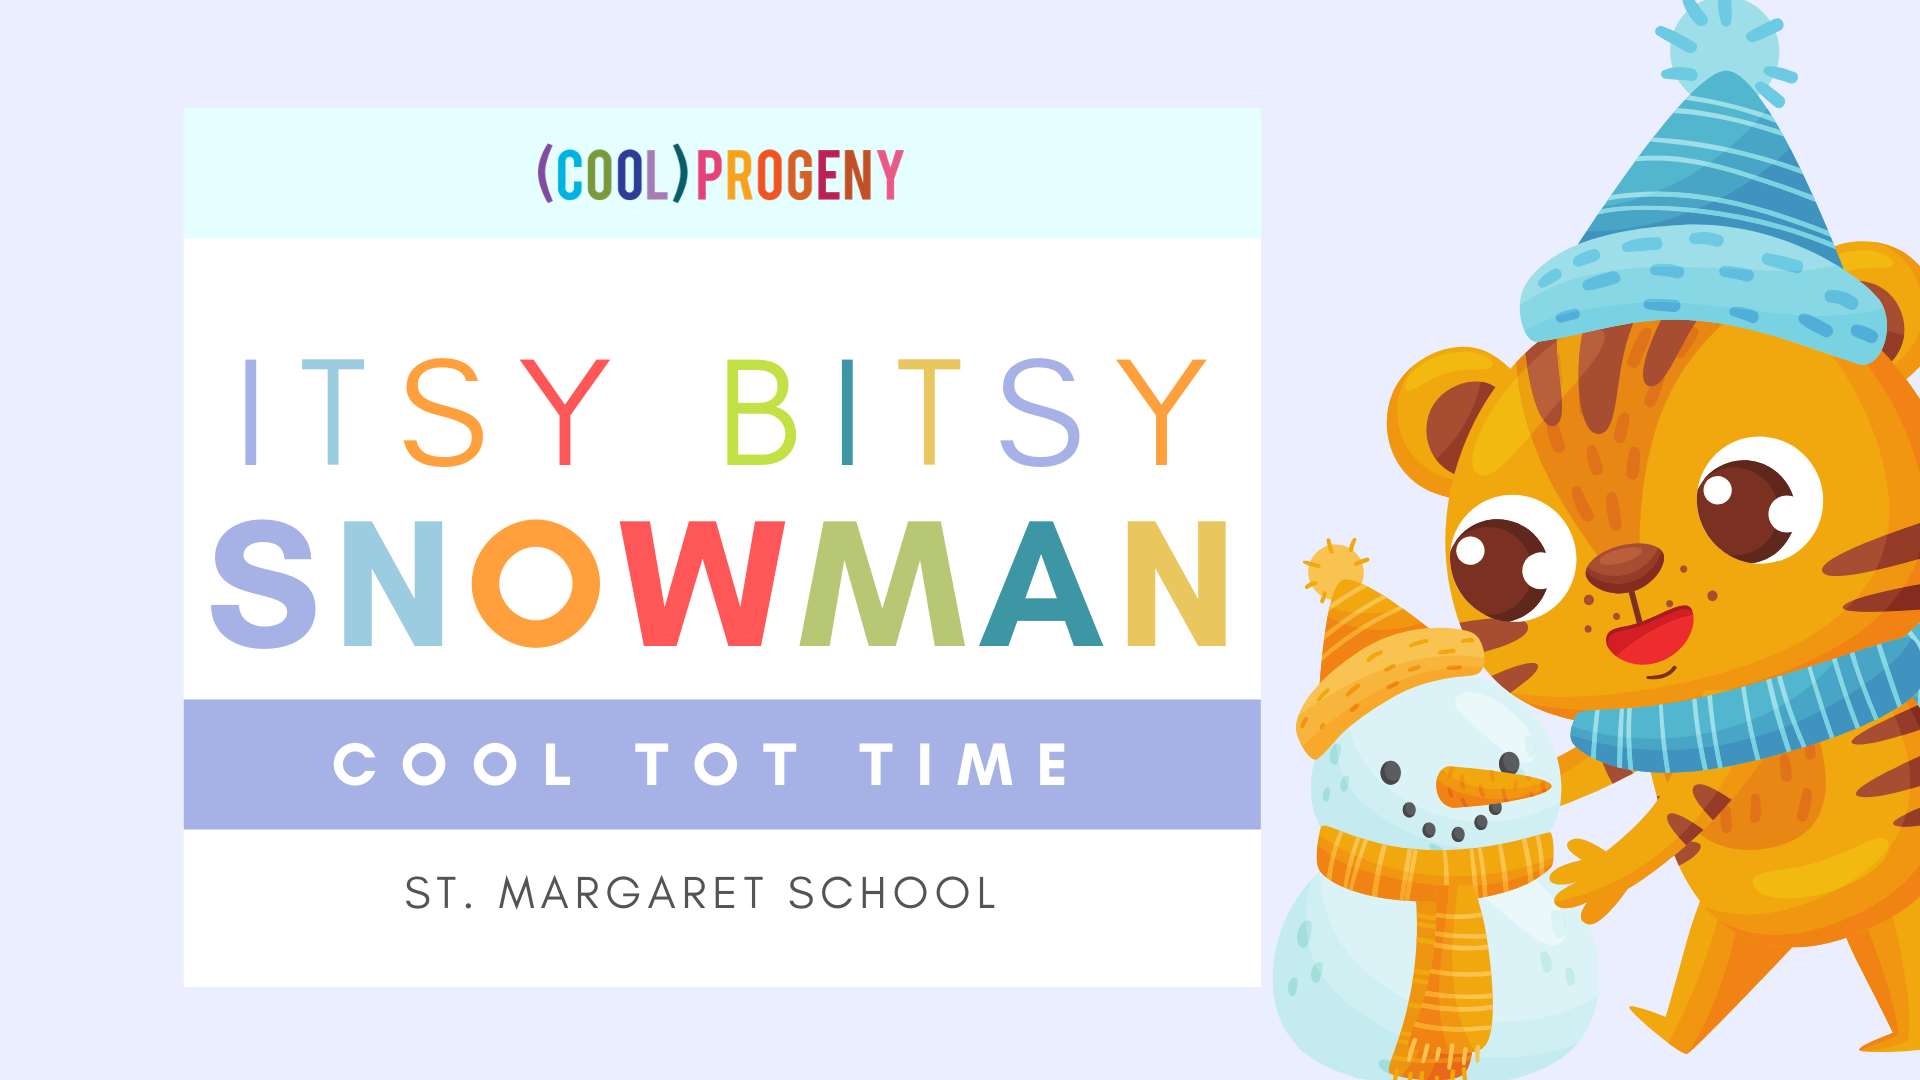 Cool Tot Time | Itsy Bitsy Snowman